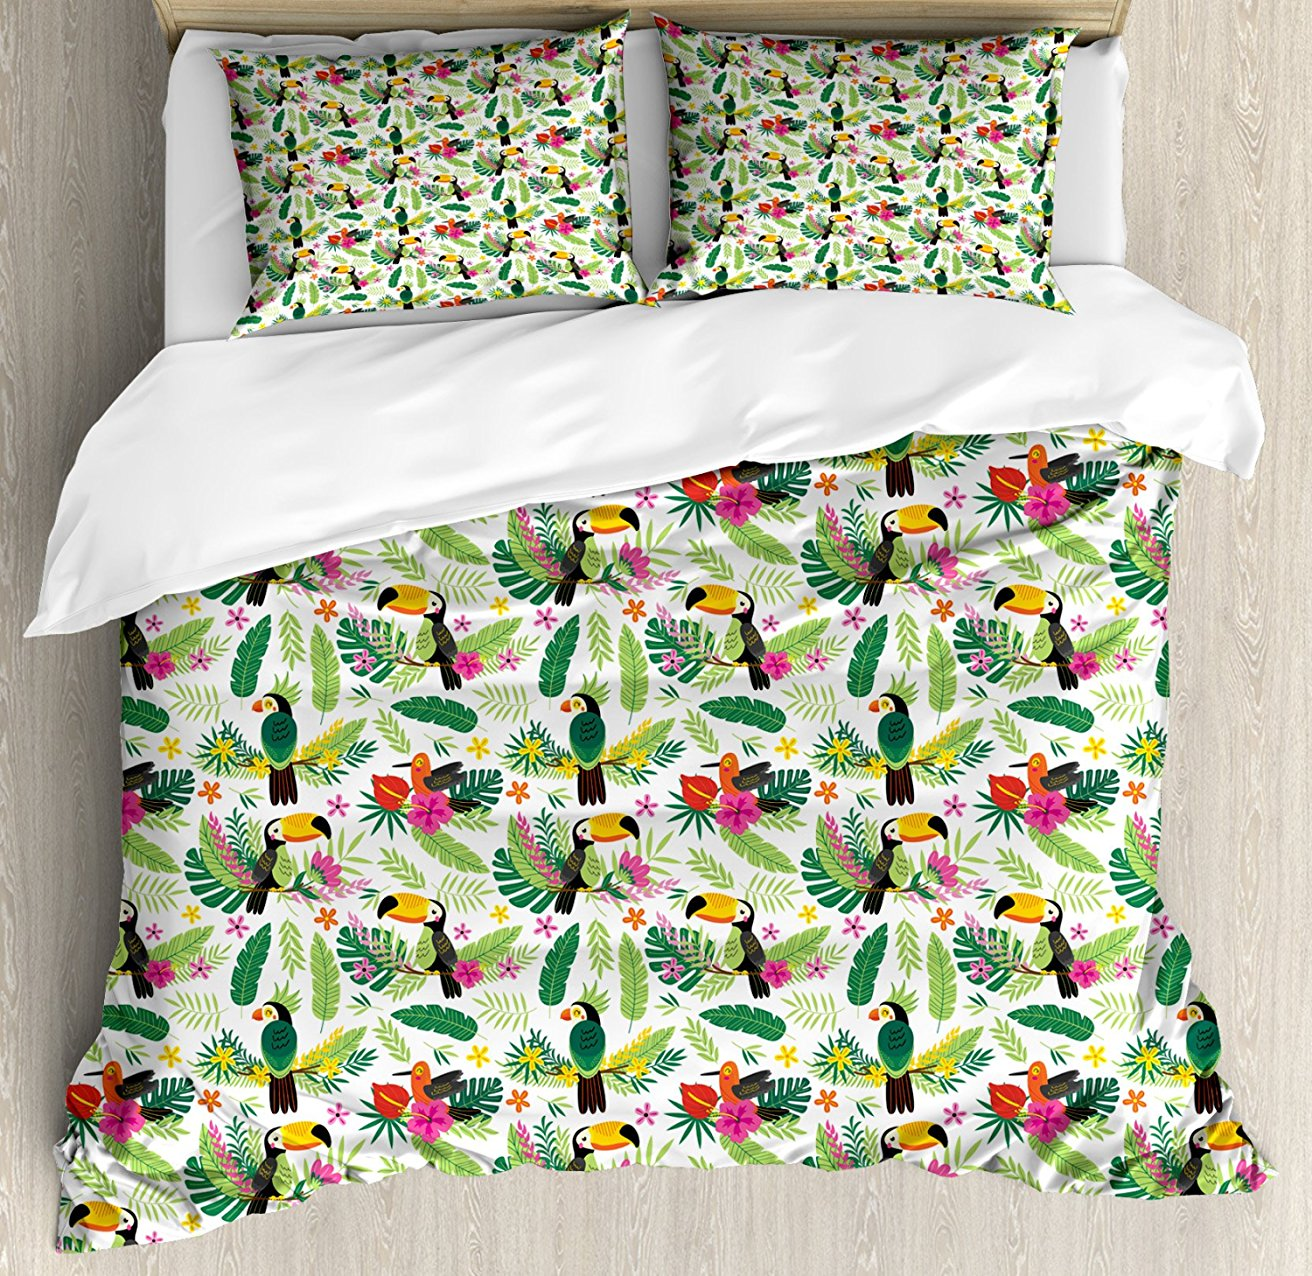 Parrot Duvet Cover Set, Tropical Island Jungle with Flora and Fauna Birds Toucan with Green Leaves Flowers, 4 Piece Bedding Set ...